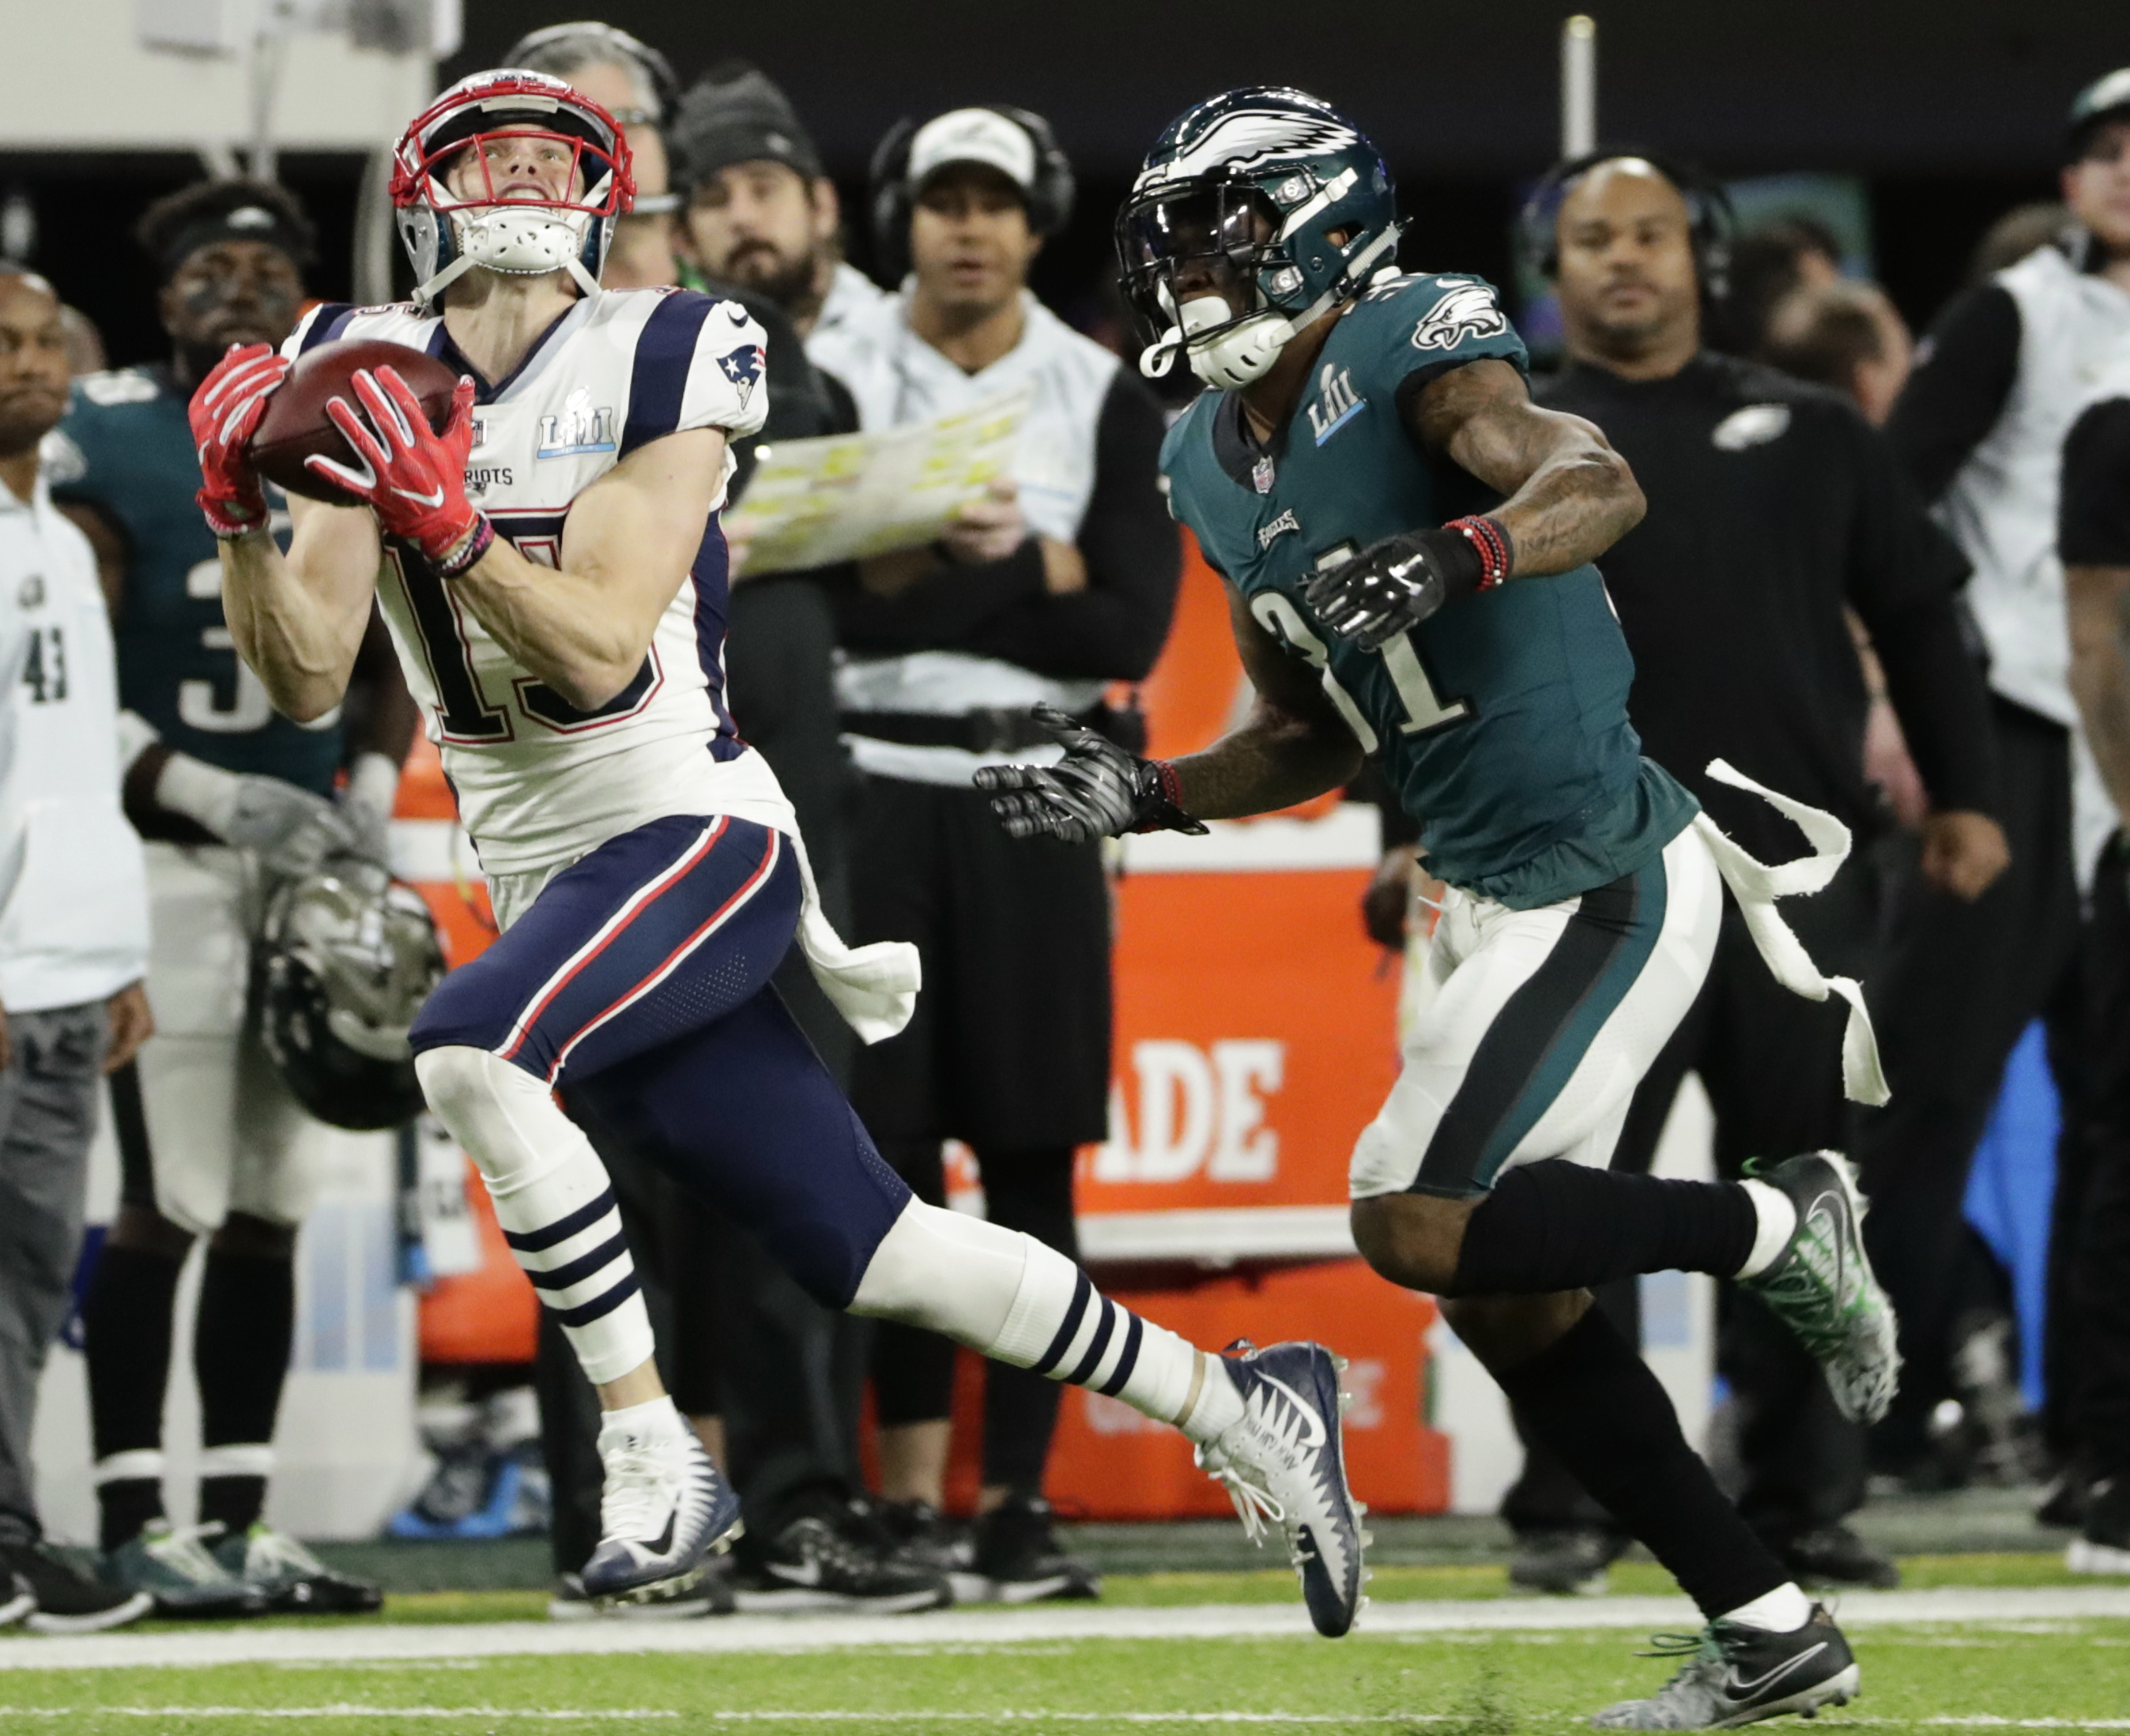 "<div class=""meta image-caption""><div class=""origin-logo origin-image ap""><span>AP</span></div><span class=""caption-text"">New England Patriots wide receiver Chris Hogan (15) makes a catch against Philadelphia Eagles cornerback Jalen Mills (31). (AP Photo/Frank Franklin II)</span></div>"